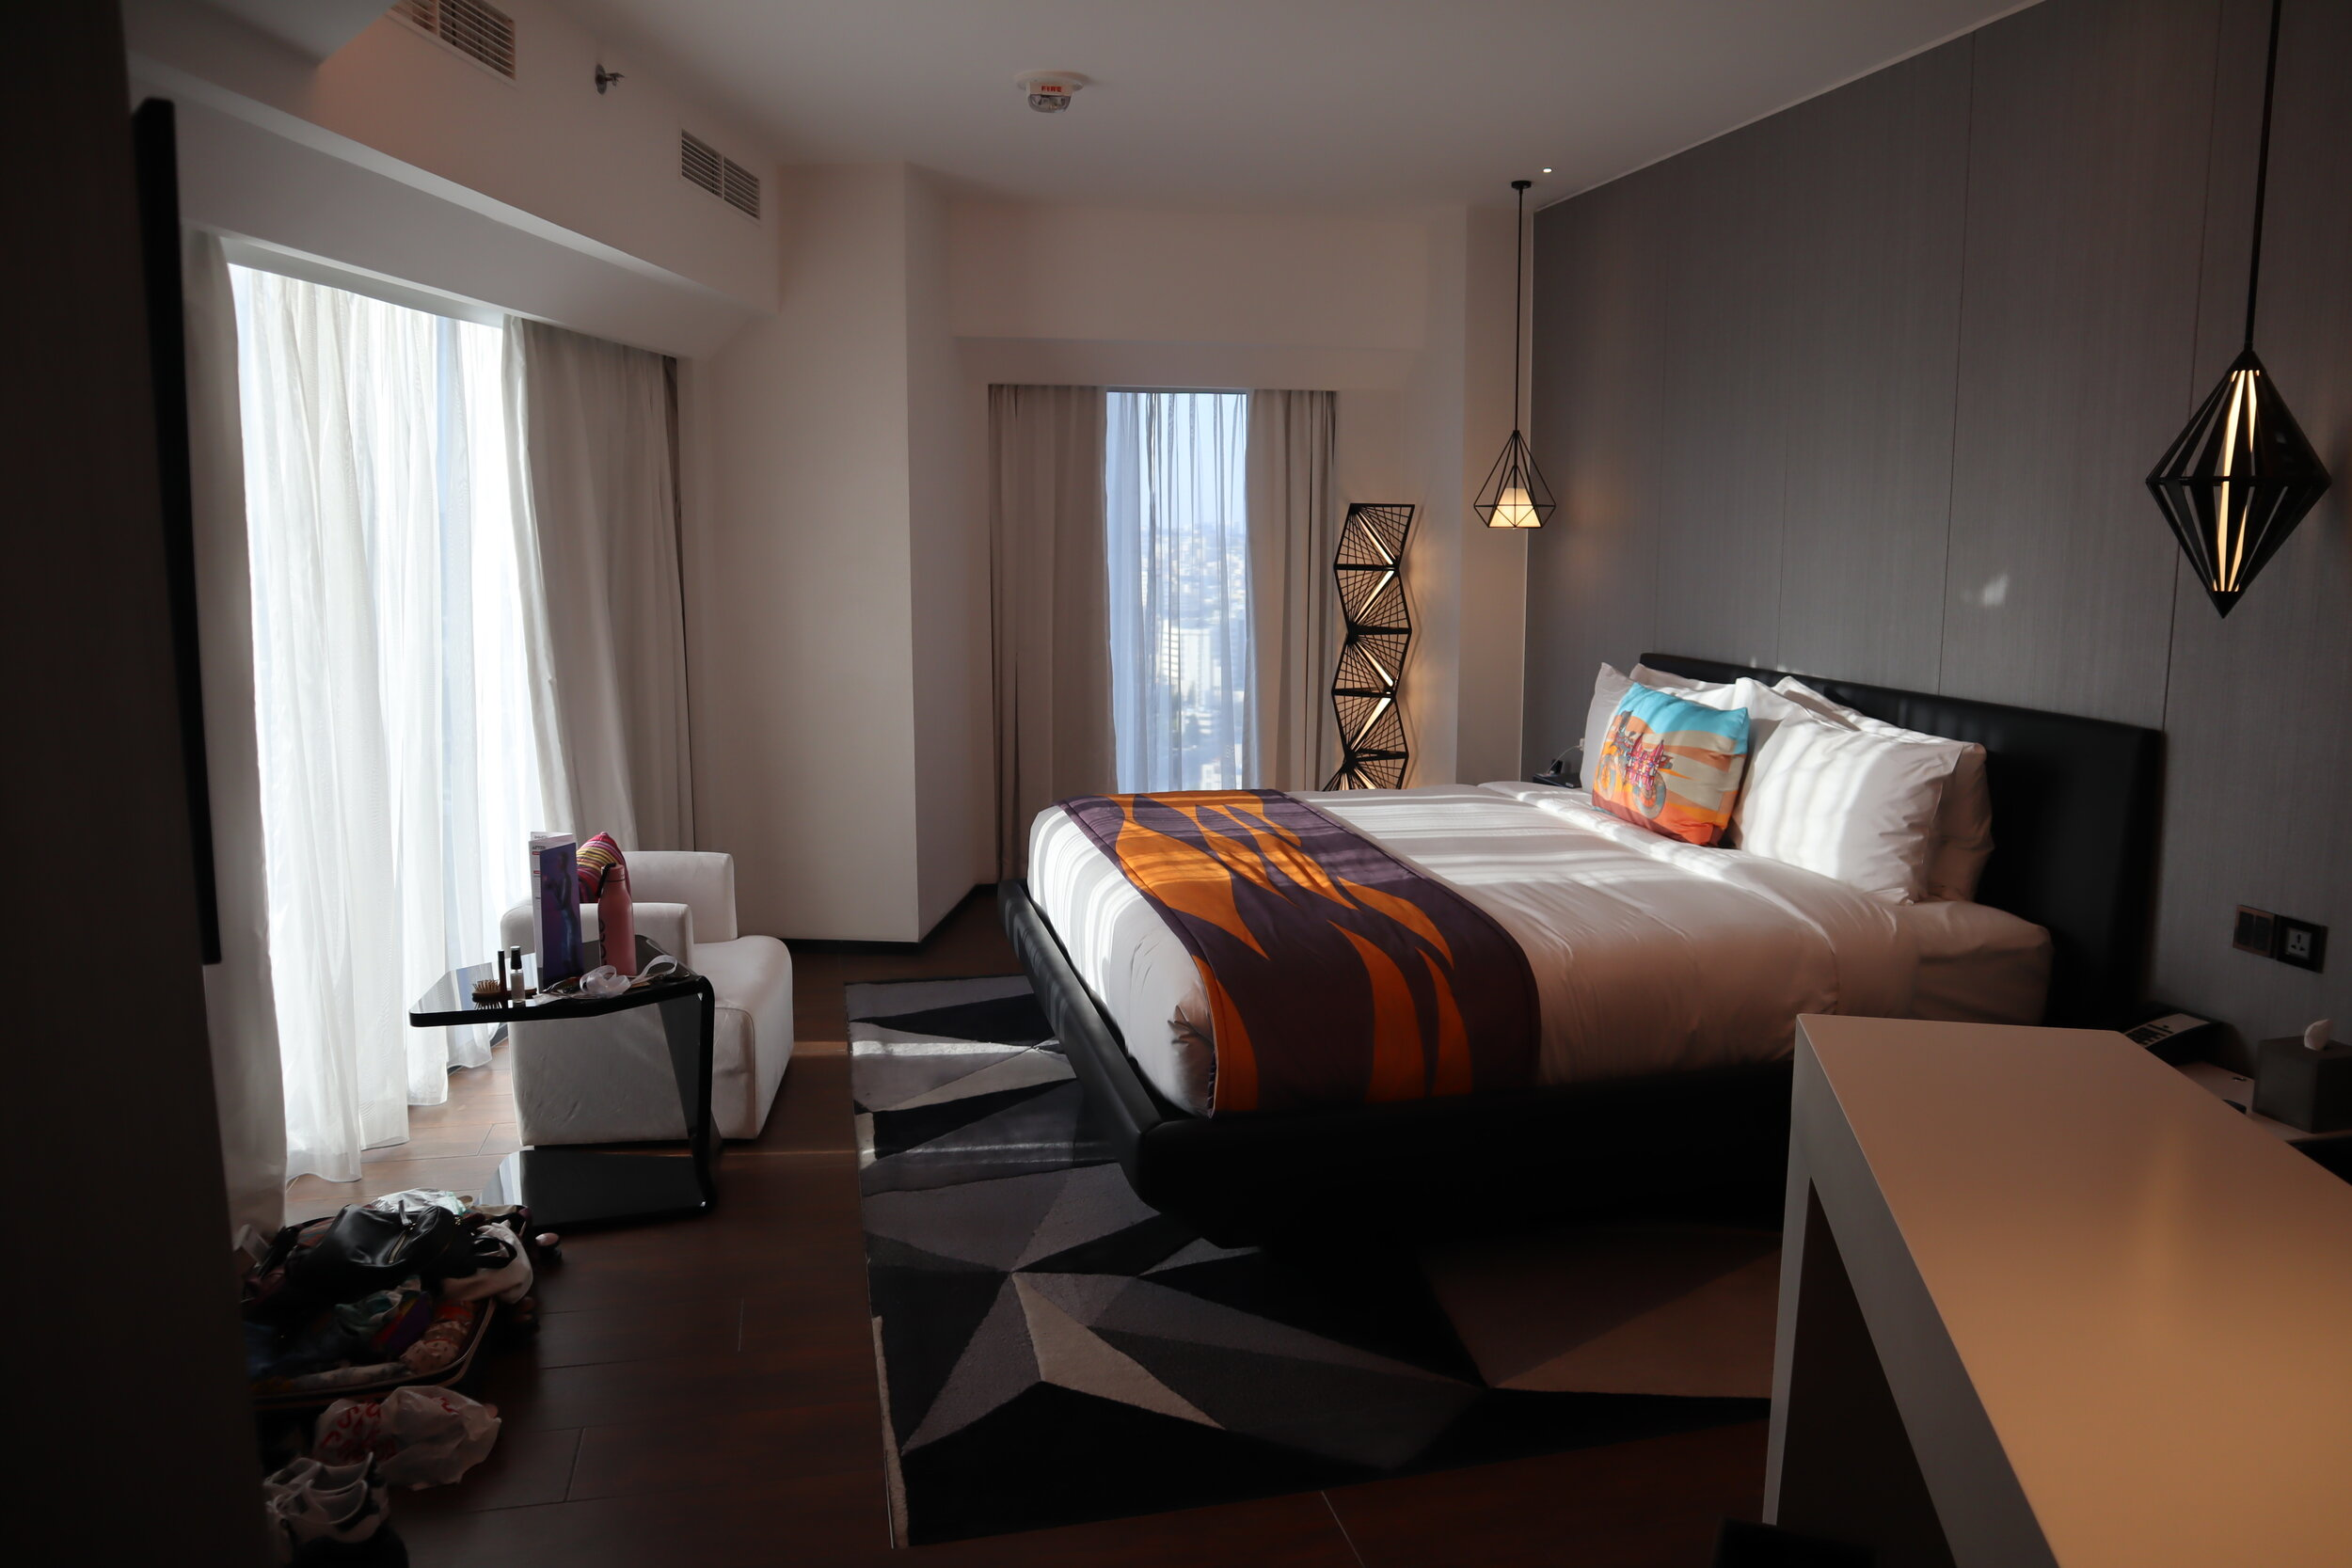 W Amman – Cool Corner Suite in the daytime